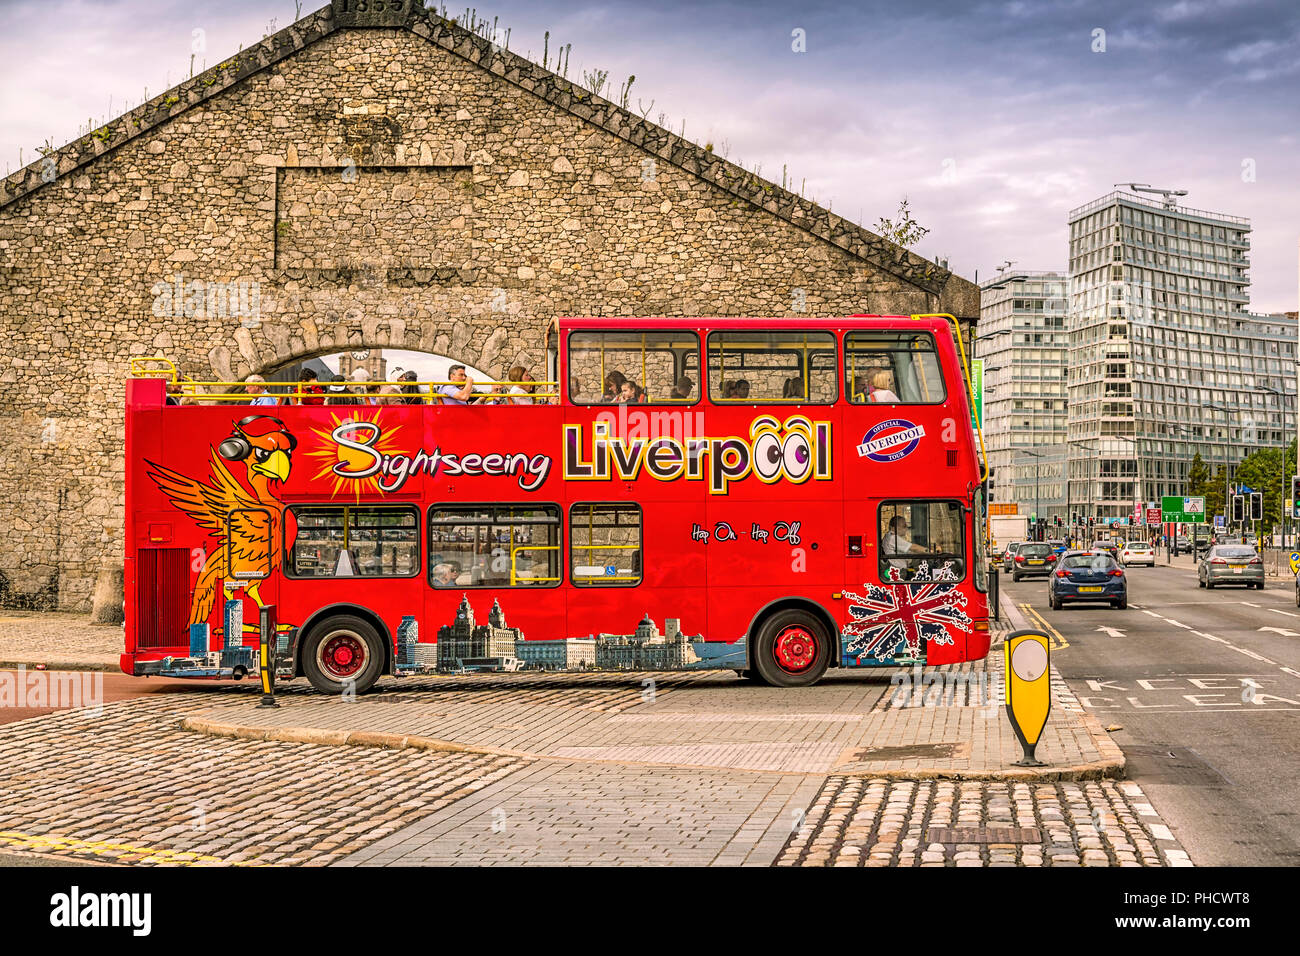 Sightseeing in Liverpool is a must, takes around the city attractions including memorable places such as The Beatles Penny Lane, Strawberry Fields etc - Stock Image